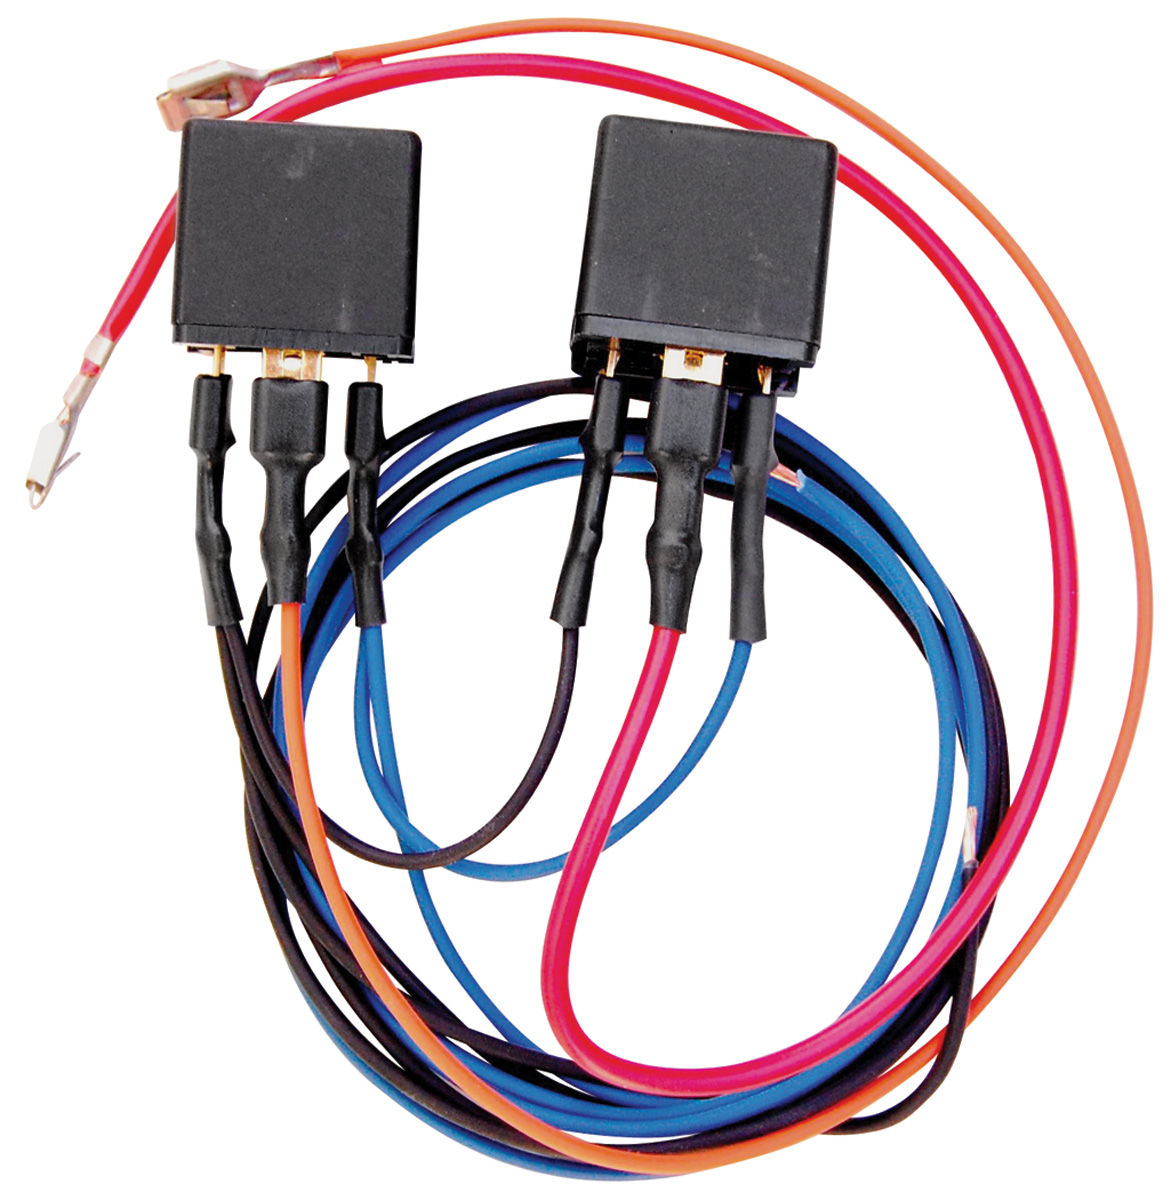 Cool Revolution Electronics Headlight Auto Off Relay Kit Fits 1964 77 Wiring Digital Resources Indicompassionincorg